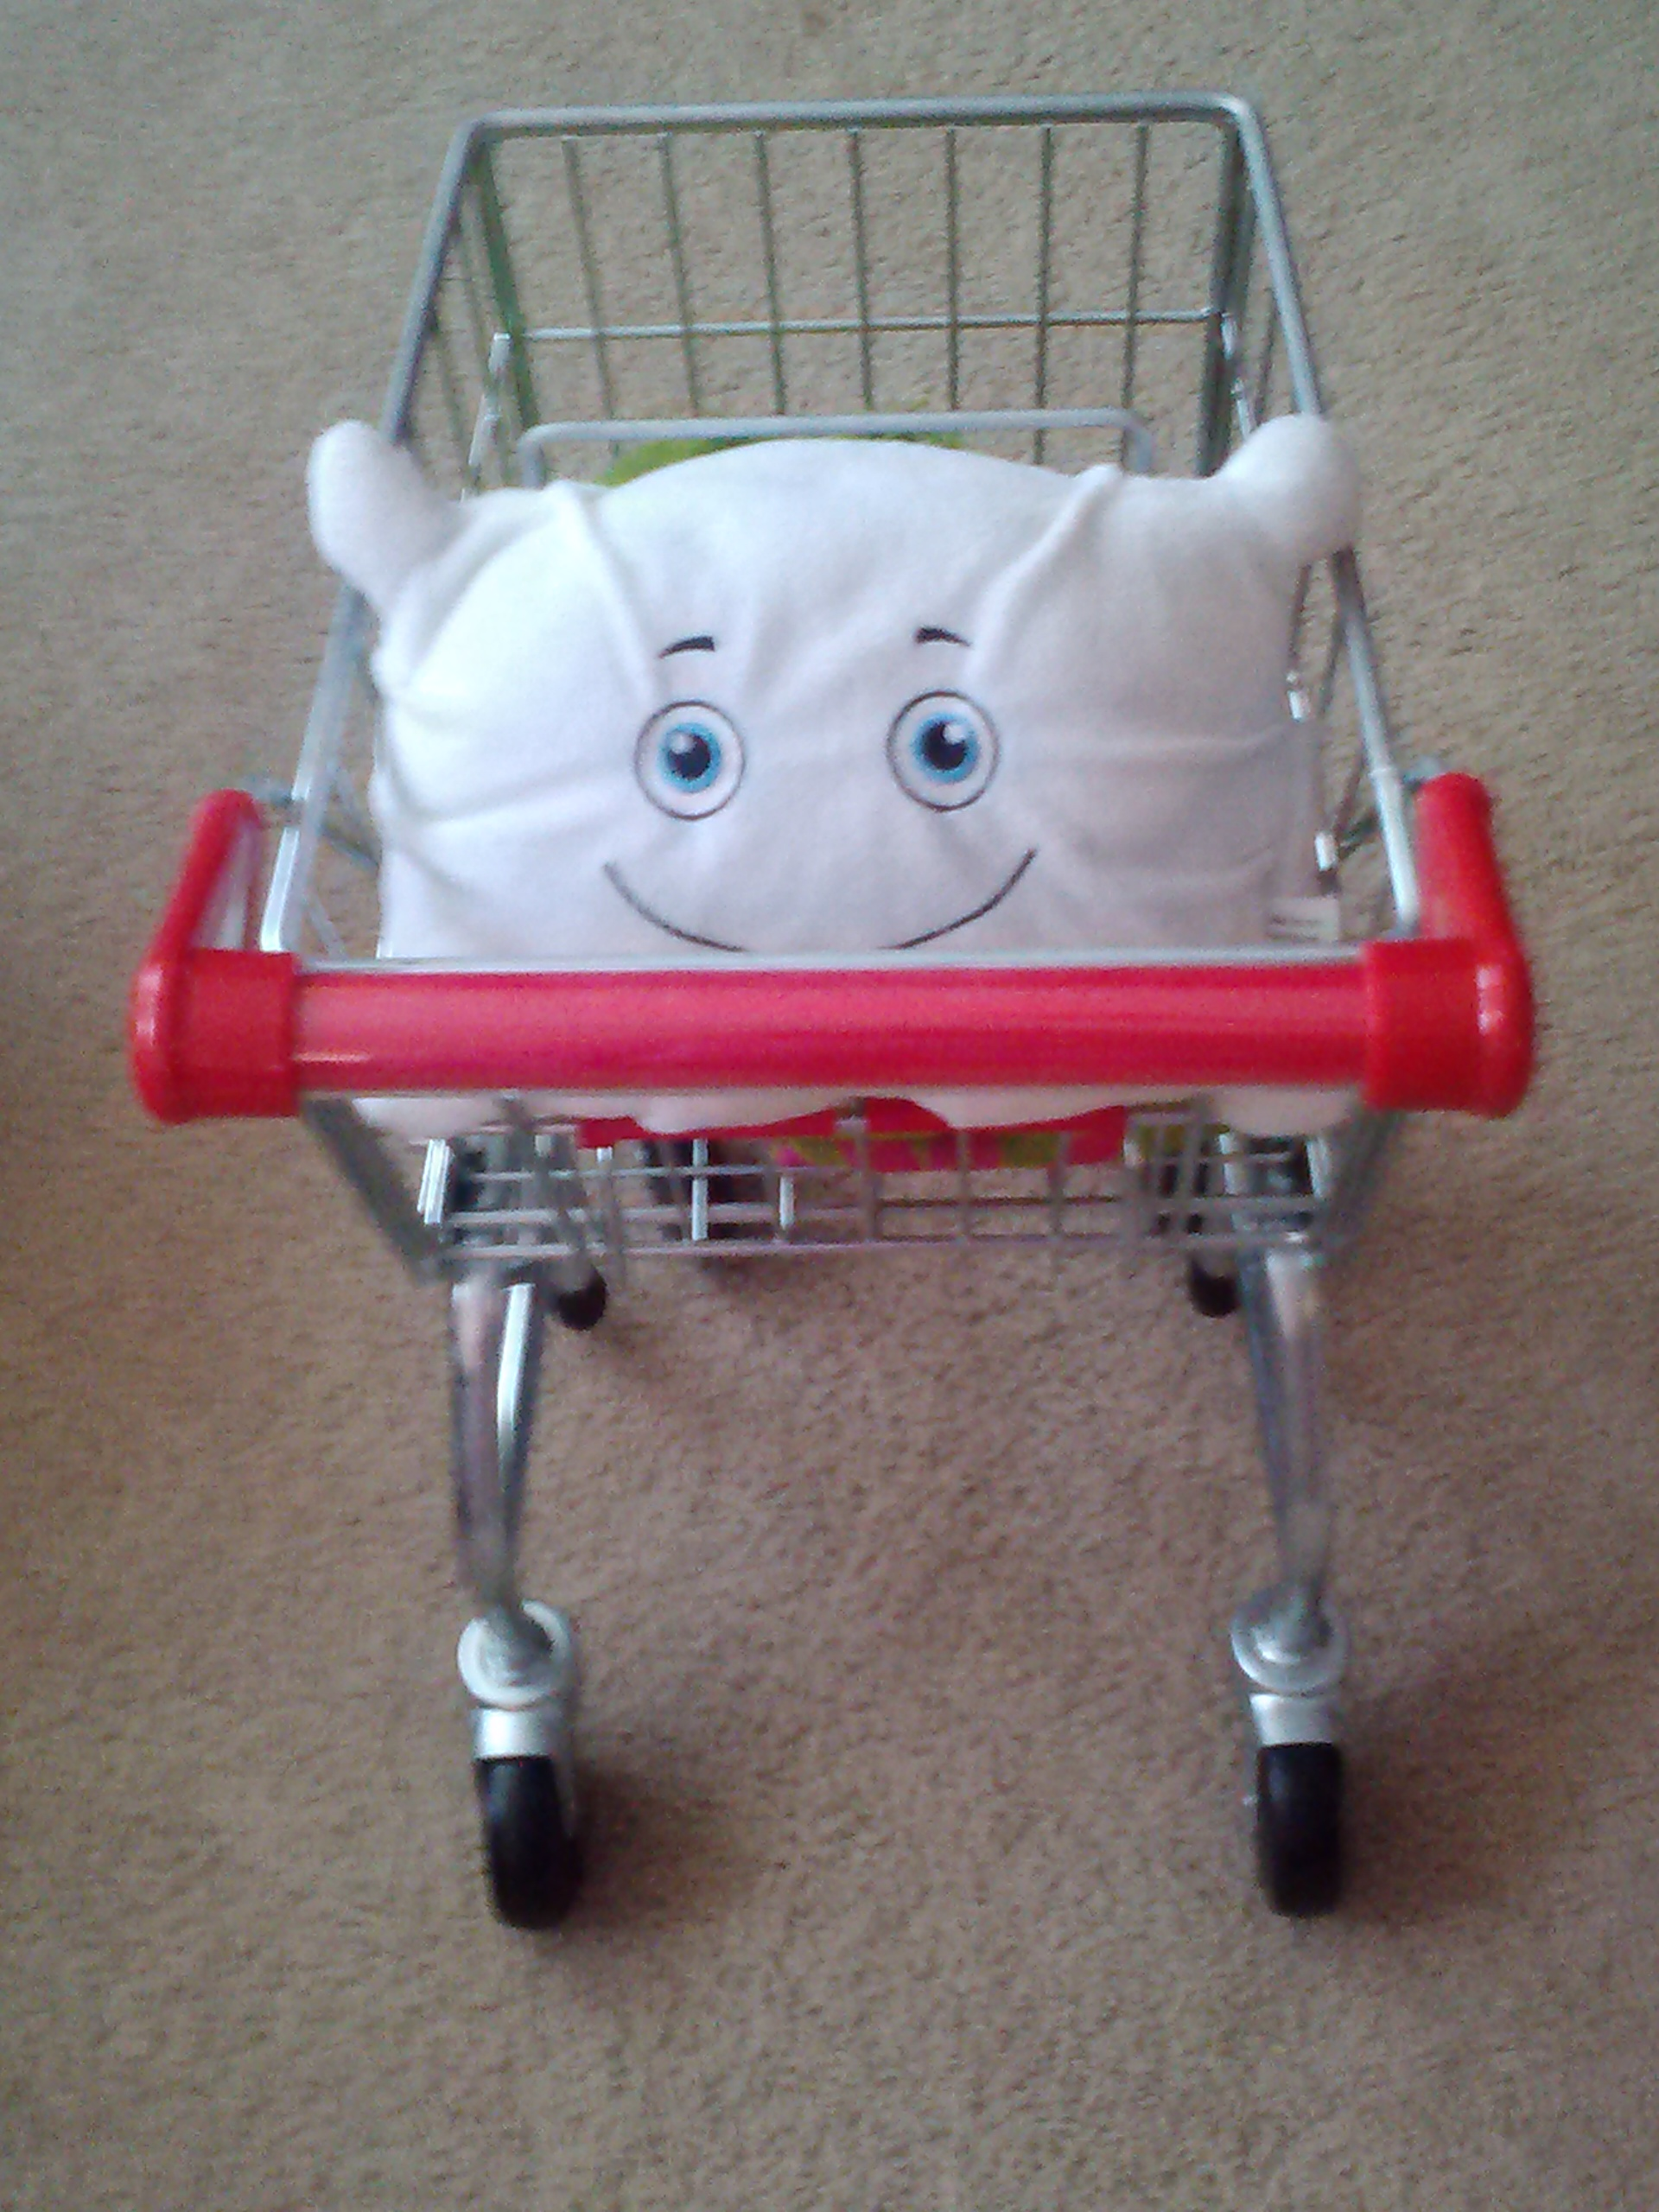 McStuffy is shopping in the living room